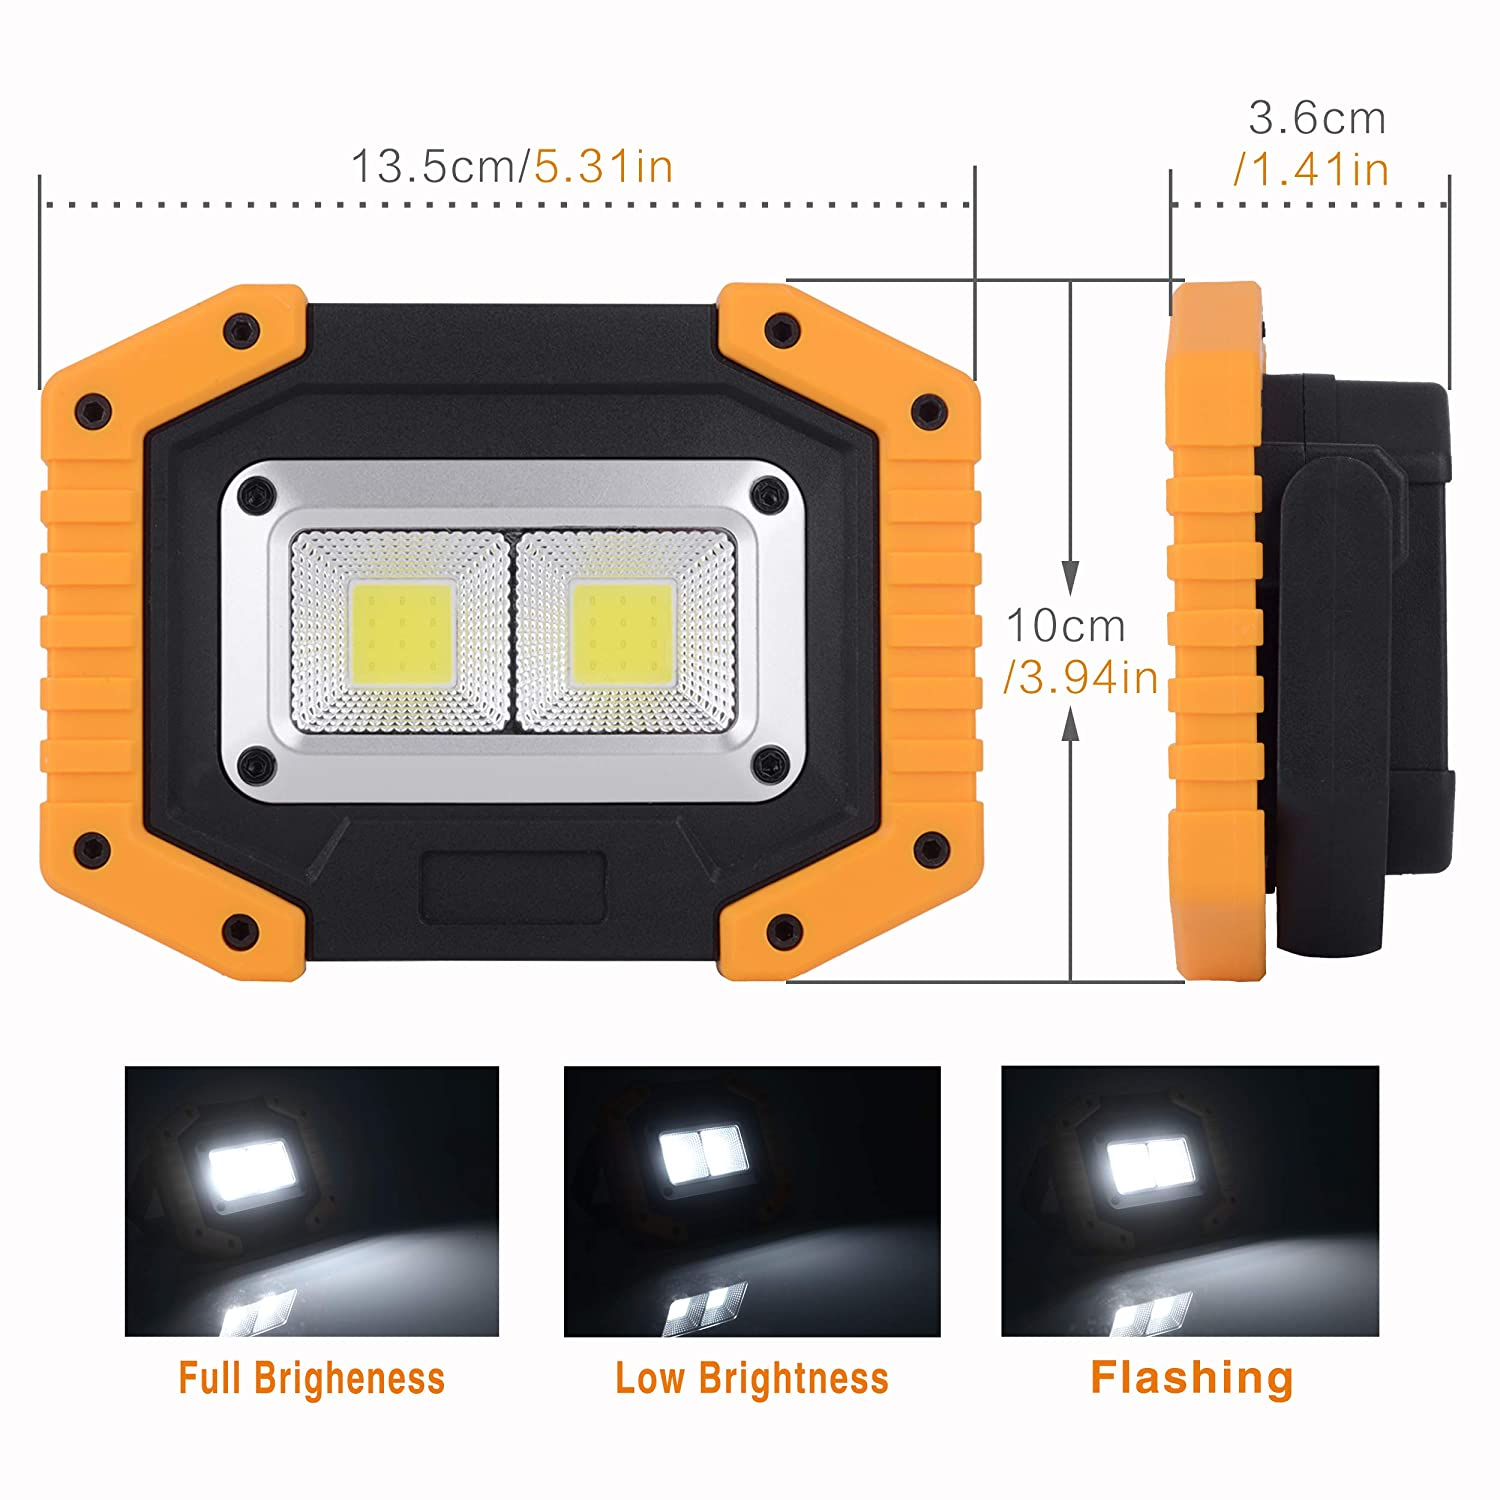 1 Pack Rechargeable Portable Waterproof LED Flood Lights for Outdoor Camping Hiking Emergency Car Repairing and Job Site Lighting OTYTY 2 COB 30W 1500LM LED Work Light